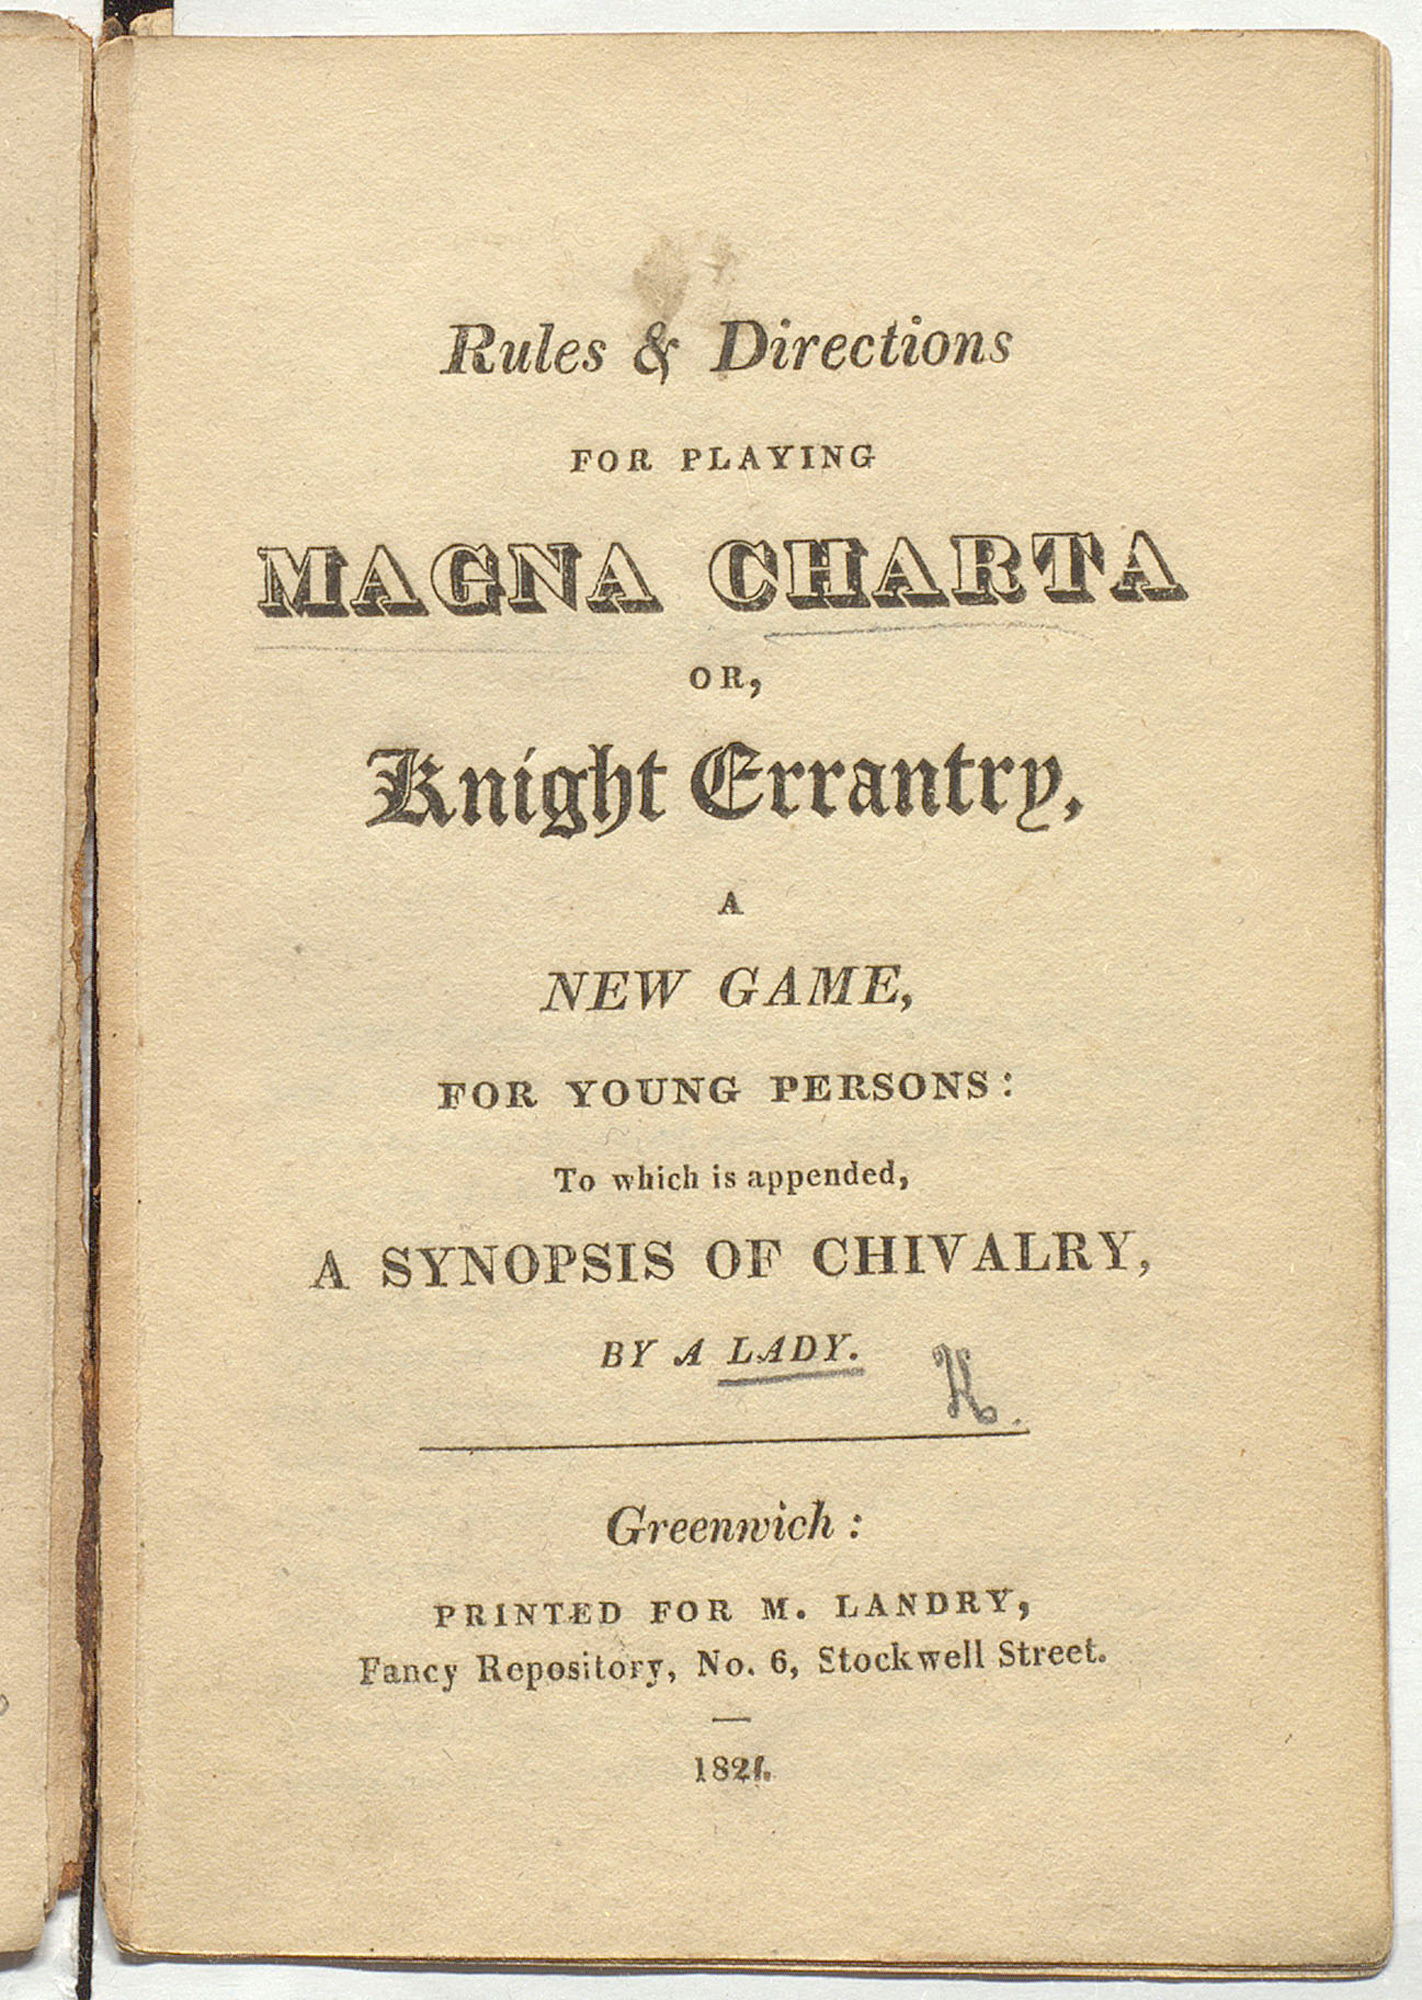 Rules and directions for playing card game entitled Magna Charta or Knight Errantry